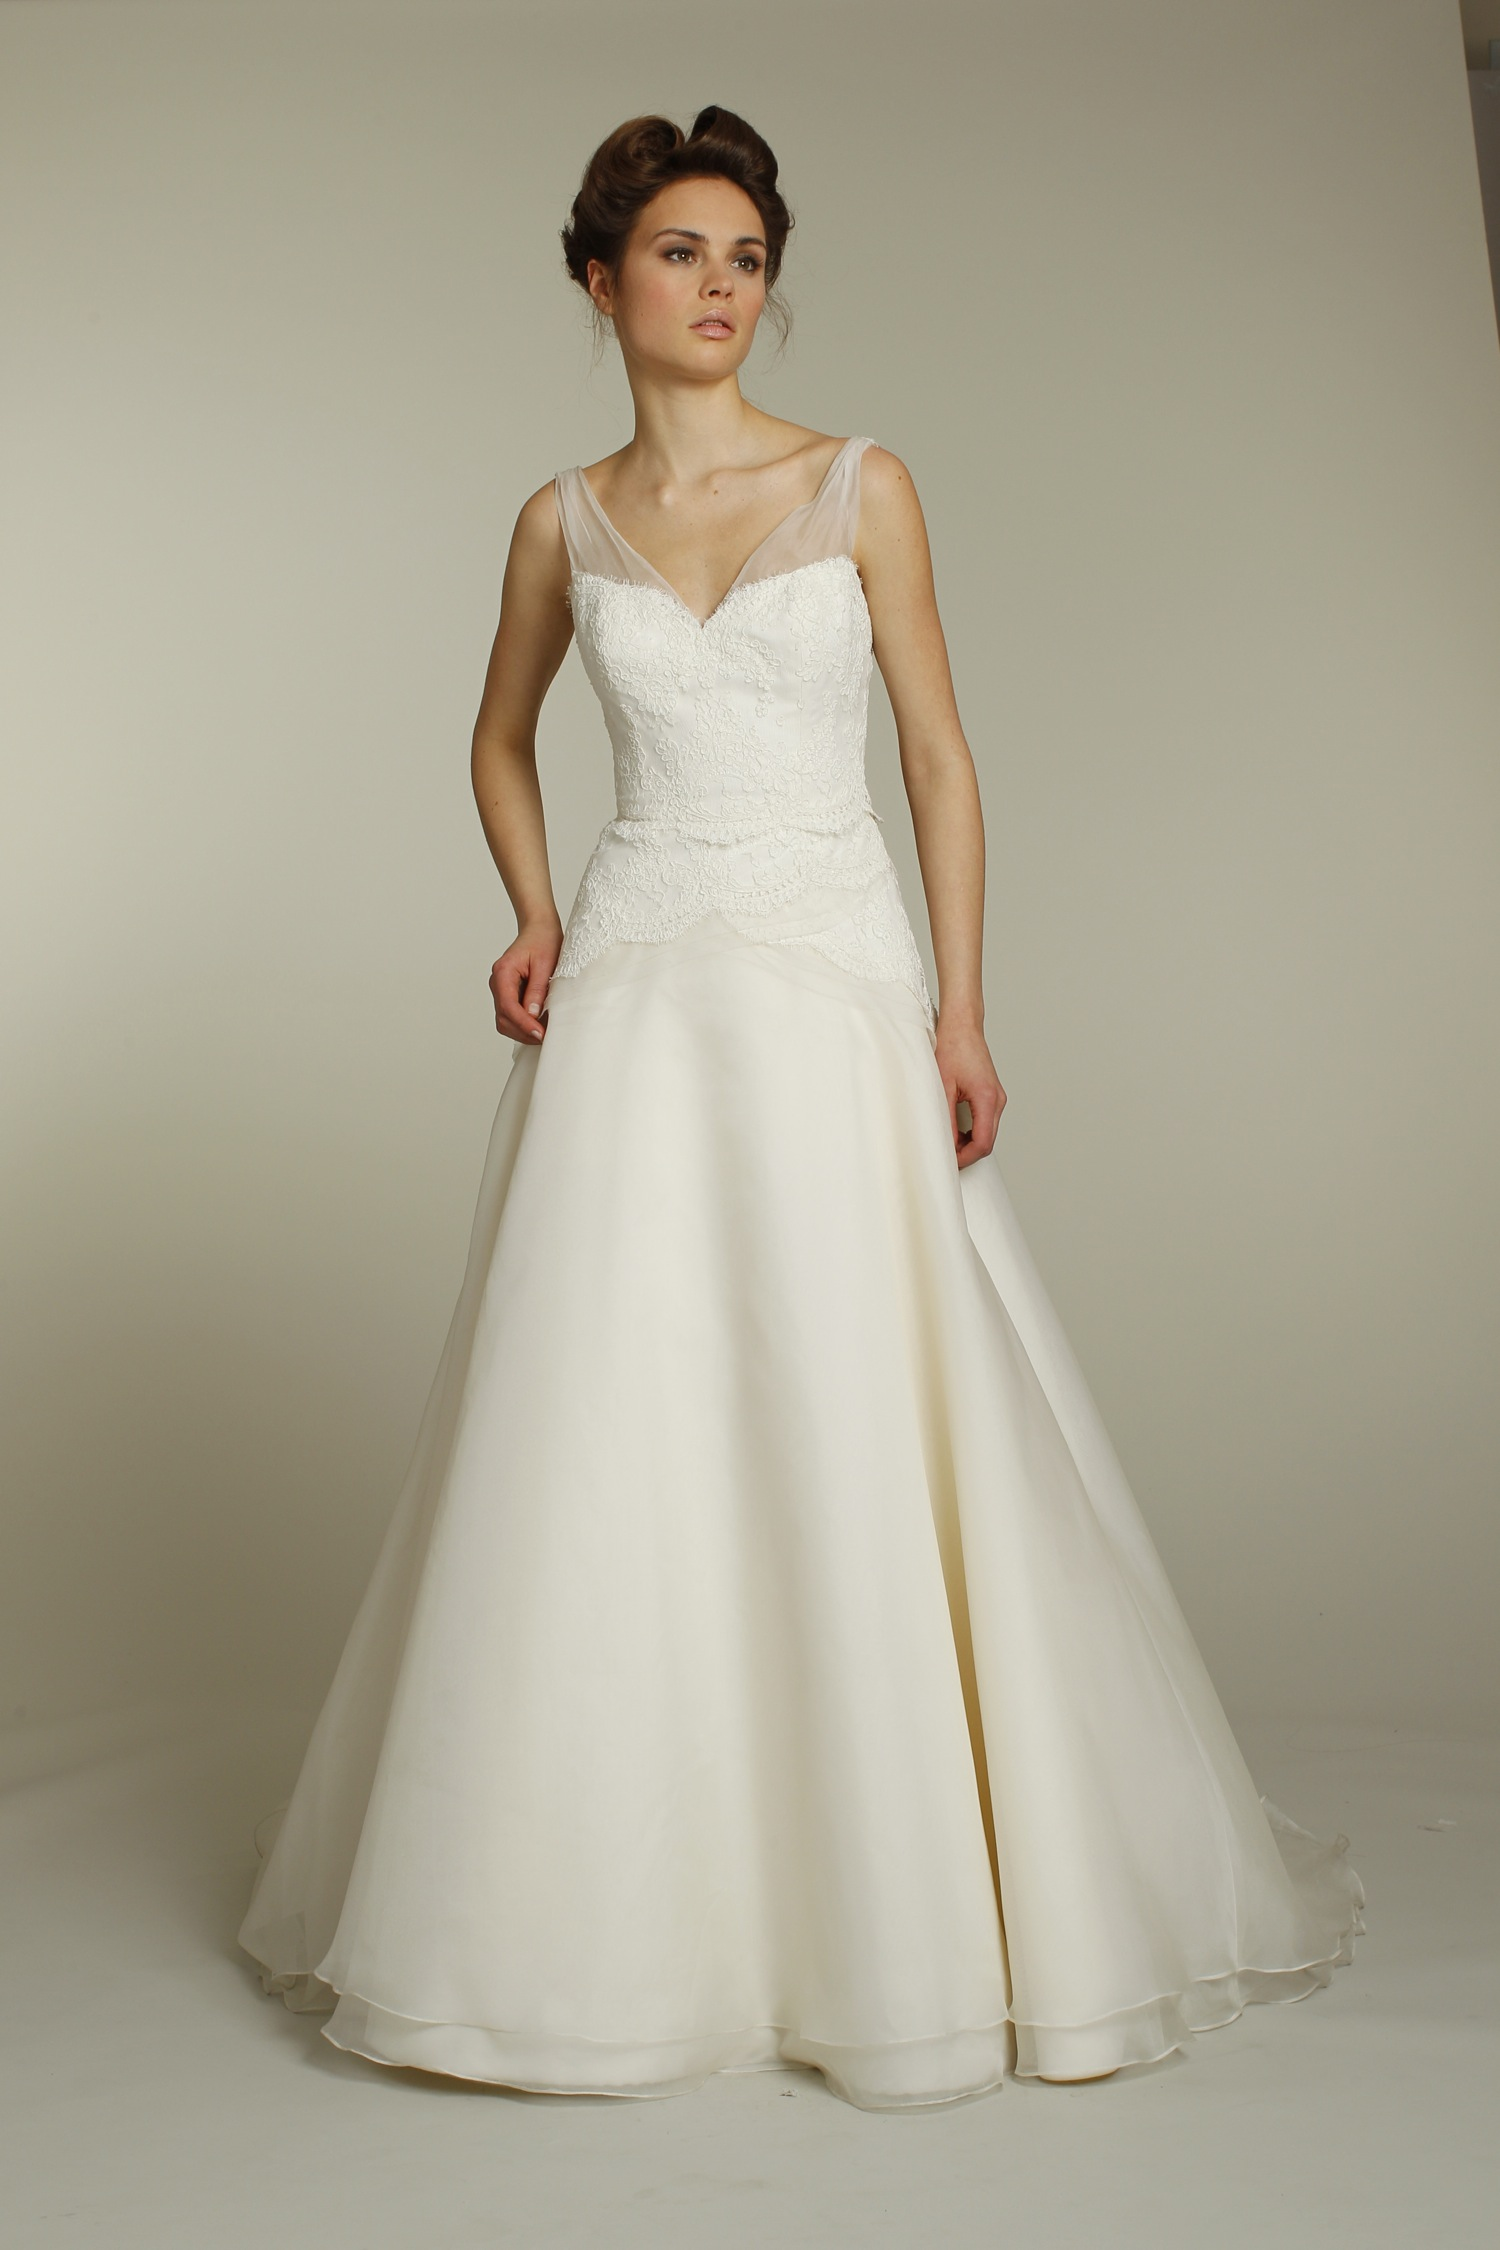 alvina valenta wedding dress 2011 bridal gowns a line illusion straps